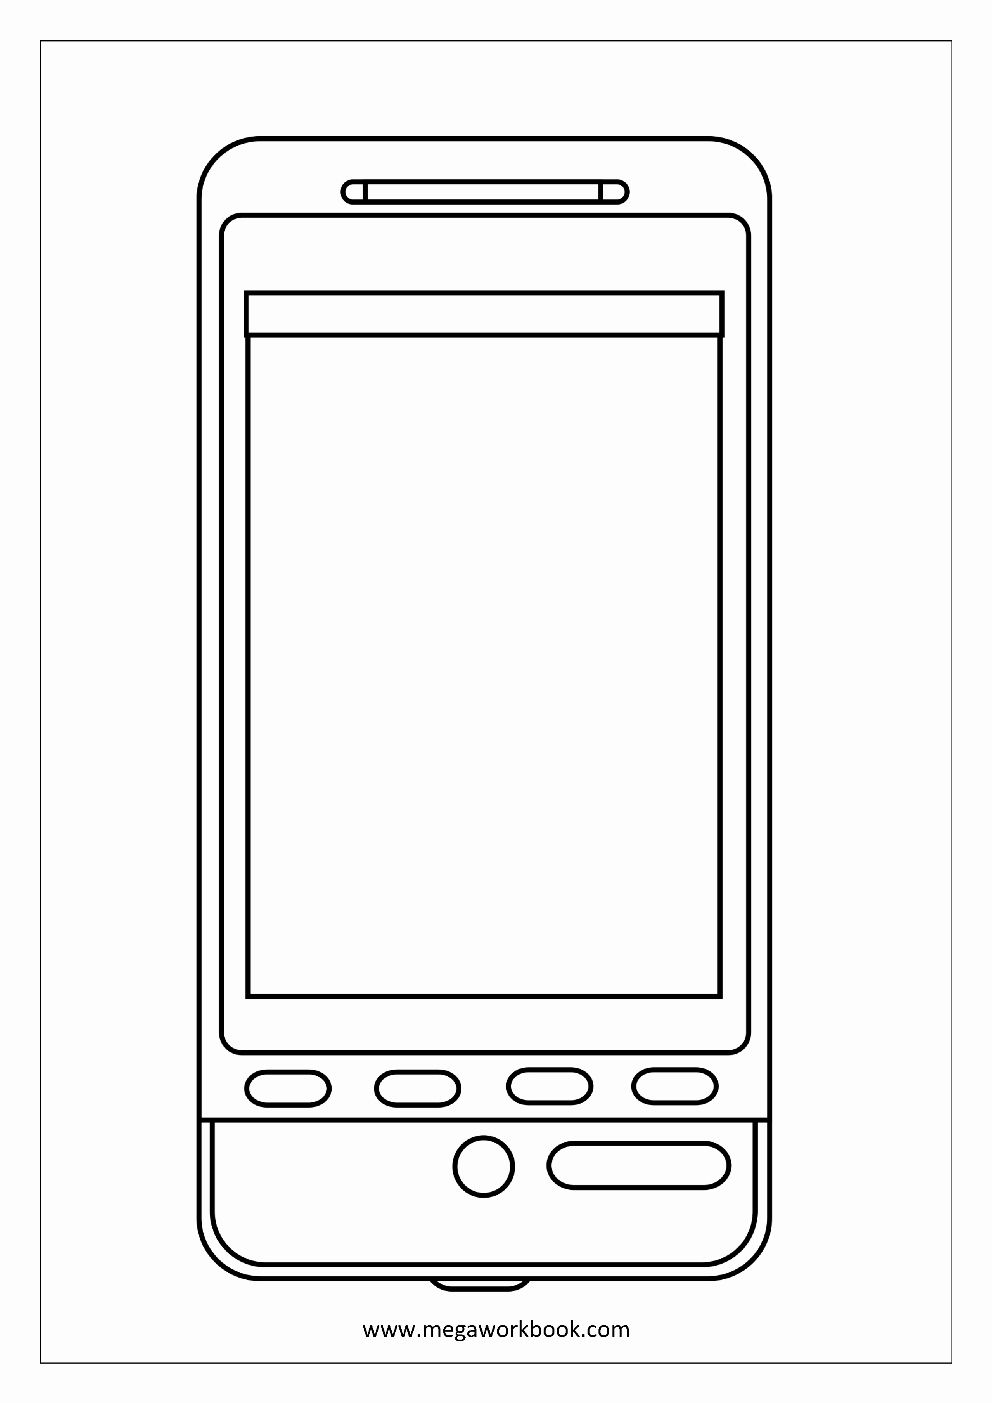 Cell Phone Coloring Page Beautiful Free Coloring Sheets Miscellaneous Megaworkbook Coloring Pages Inspirational Coloring Pages Candy Coloring Pages